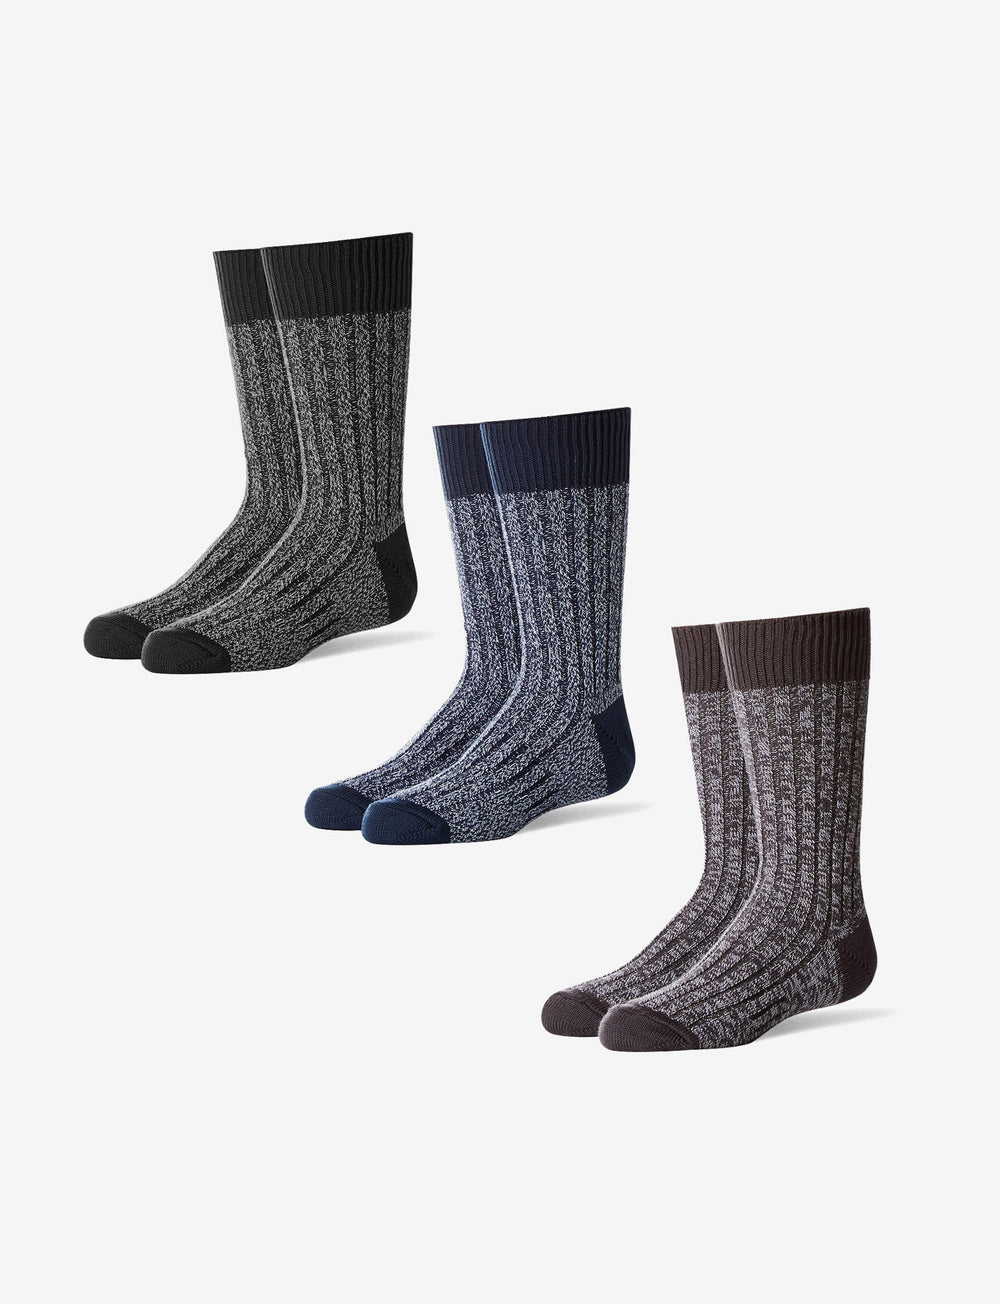 Youth Casual Sock 3 Pack Details Image